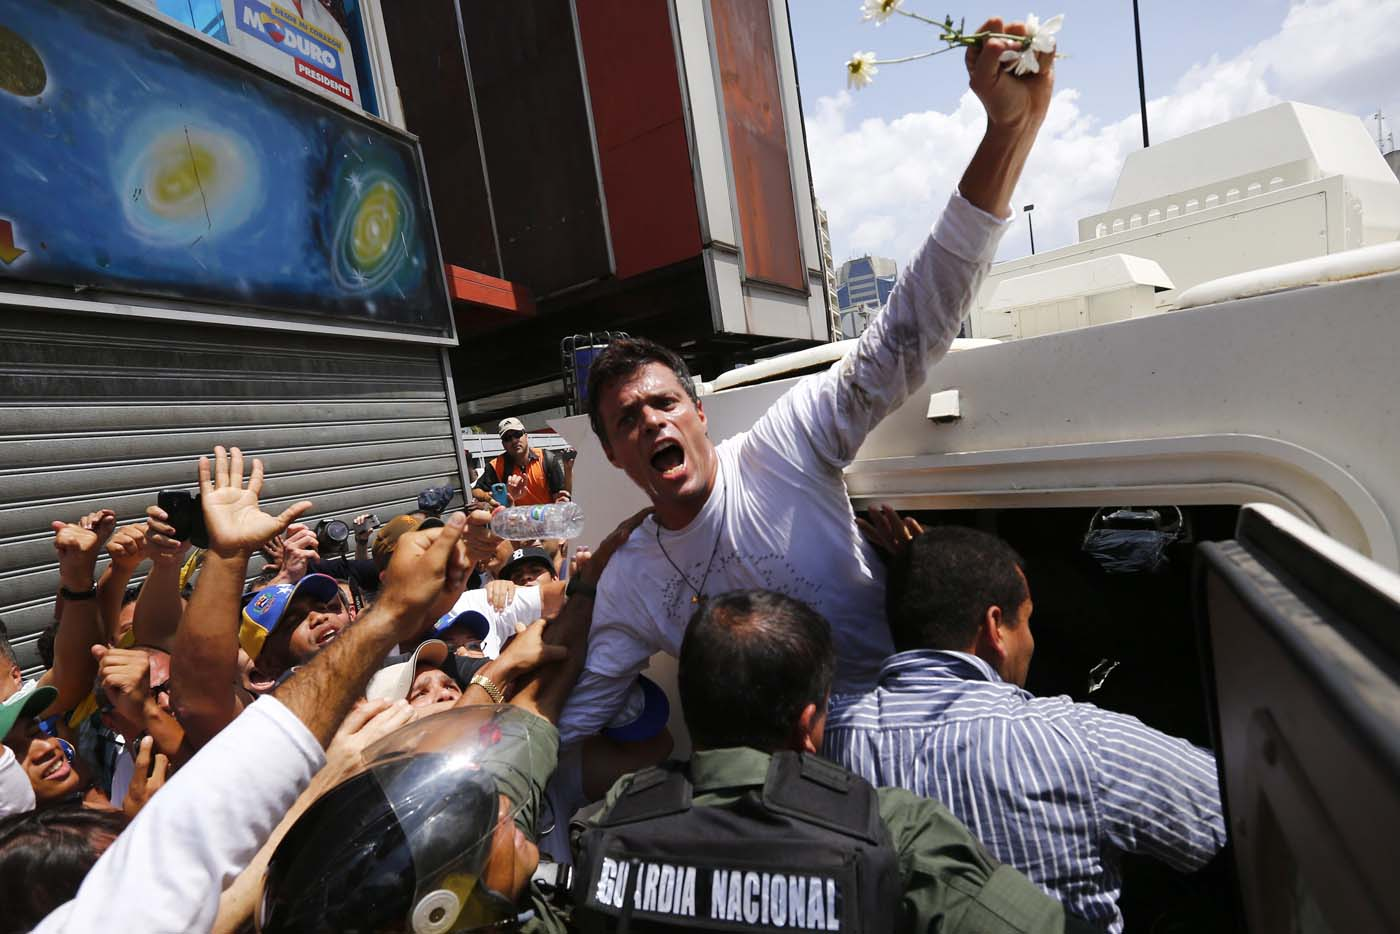 Venezuelan opposition leader Leopoldo Lopez gets into a National Guard armored vehicle in Caracas February 18, 2014. Lopez, wanted on charges of fomenting deadly violence, handed himself over to security forces on Tuesday, Reuters witnesses said. Lopez, a 42-year-old U.S.-educated economist who has spearheaded a recent wave of protests in Venezuela, got into an armored vehicle after giving a speech to an opposition rally in Caracas. REUTERS/Jorge Silva (VENEZUELA - Tags: POLITICS CIVIL UNREST)